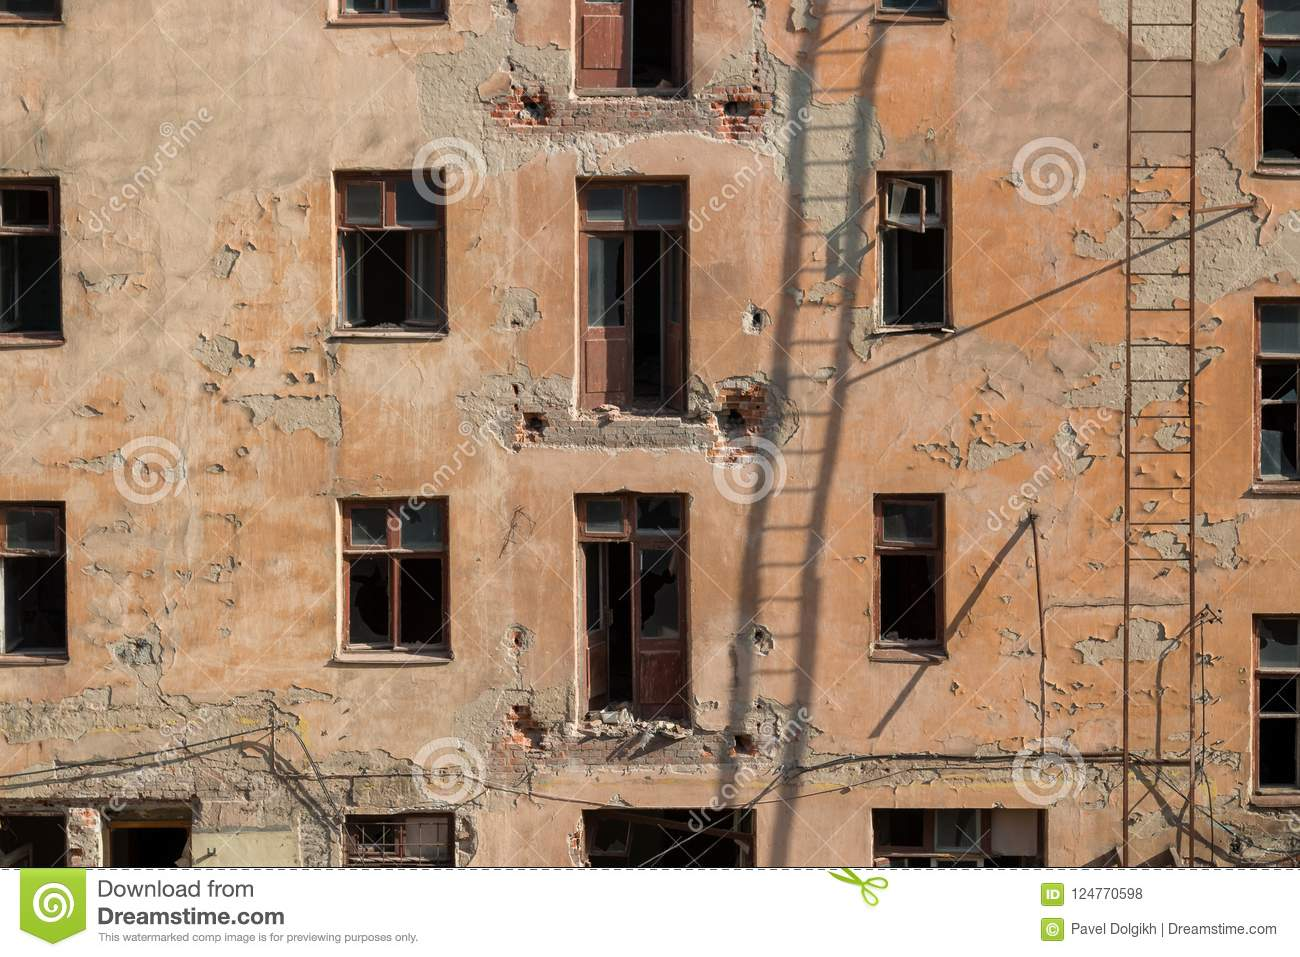 Demolition of an apartment house